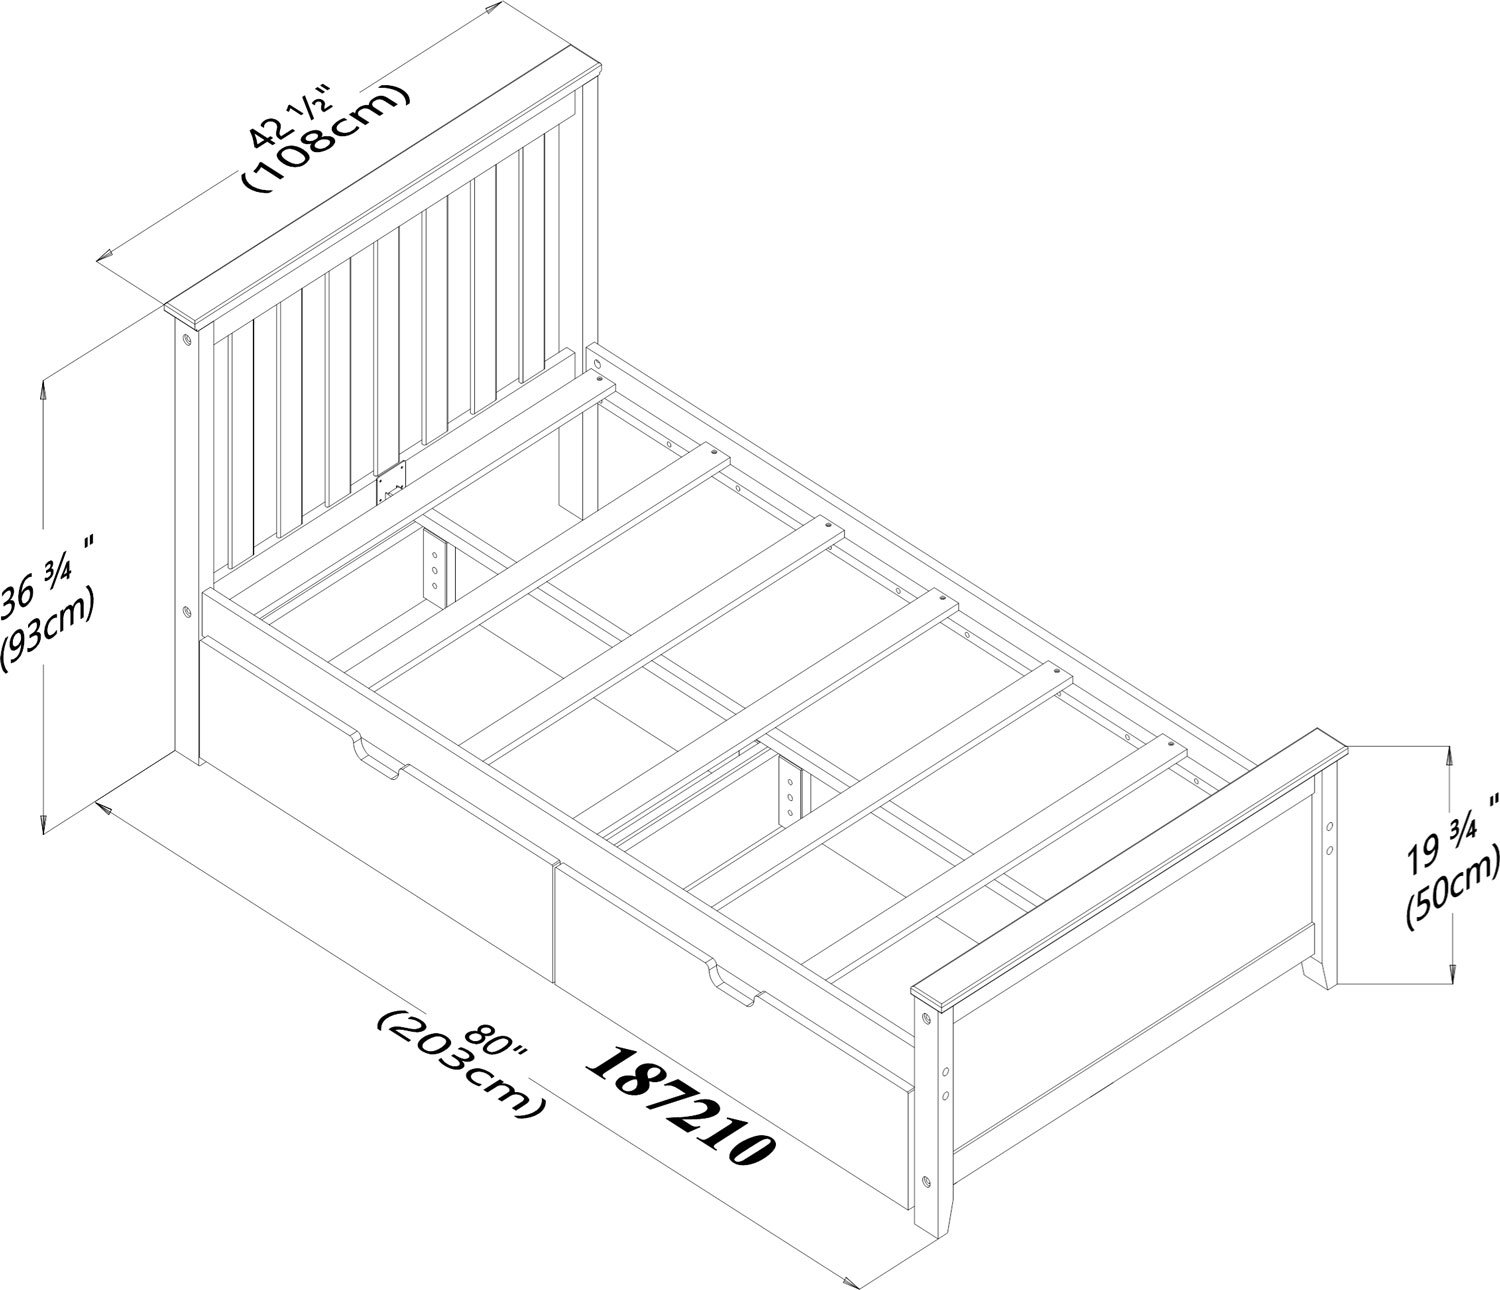 Max & Lily Solid Wood Twin-Size Bed with Under Bed Storage Drawers, Natural by Max & Lily (Image #6)